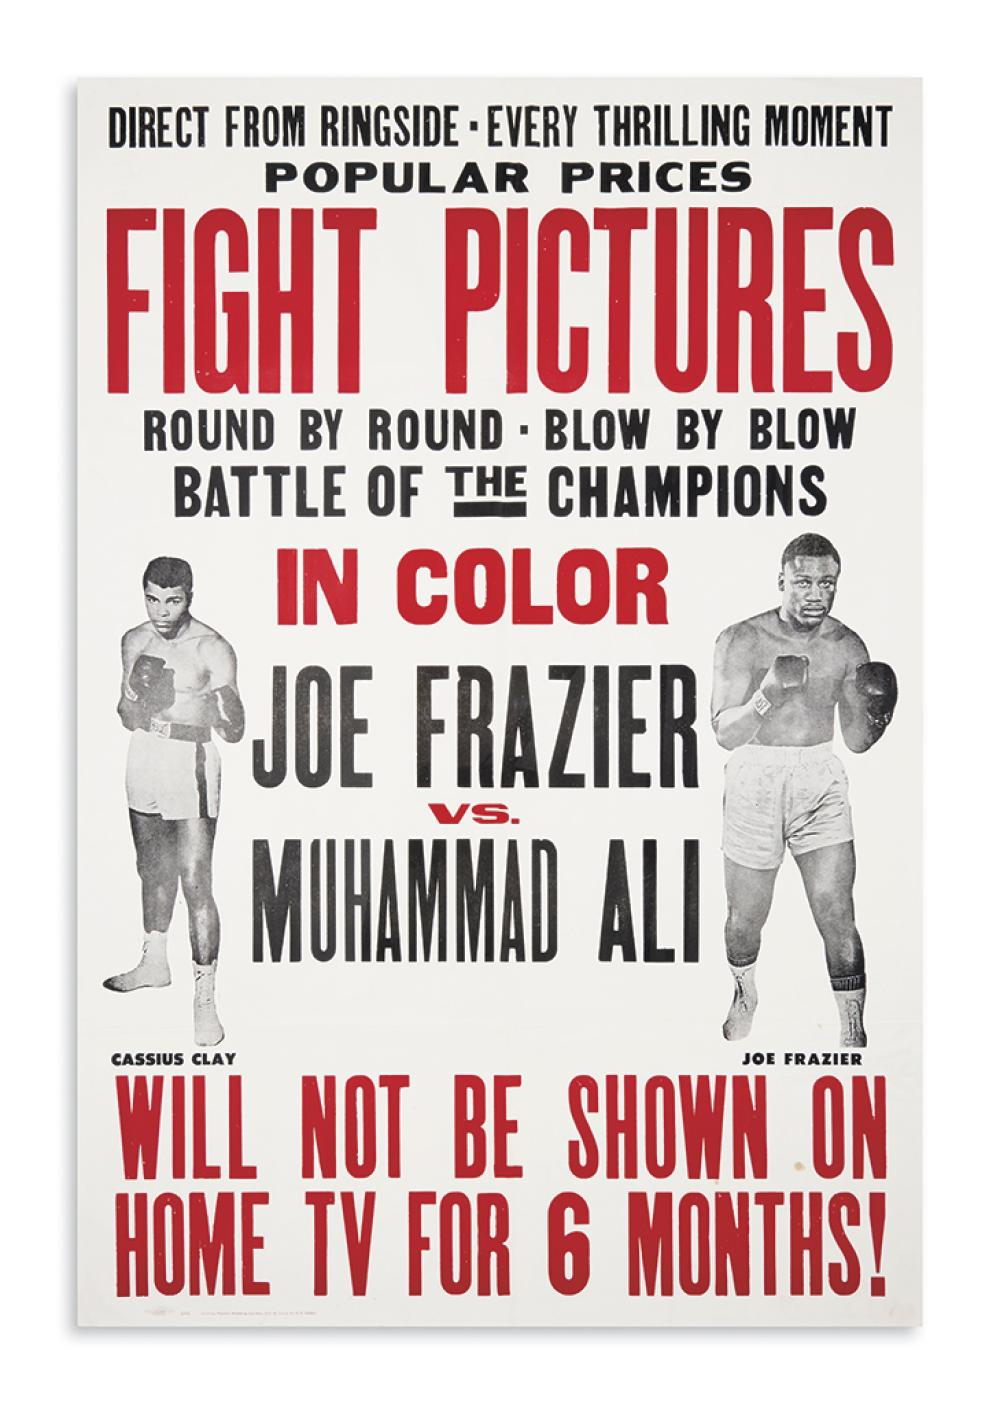 (SPORTS--BOXING.) Direct from Ringside, Every Thrilling Moment . . . Fight Pictures . . . Joe Frazier vs. Muhammad Ali.